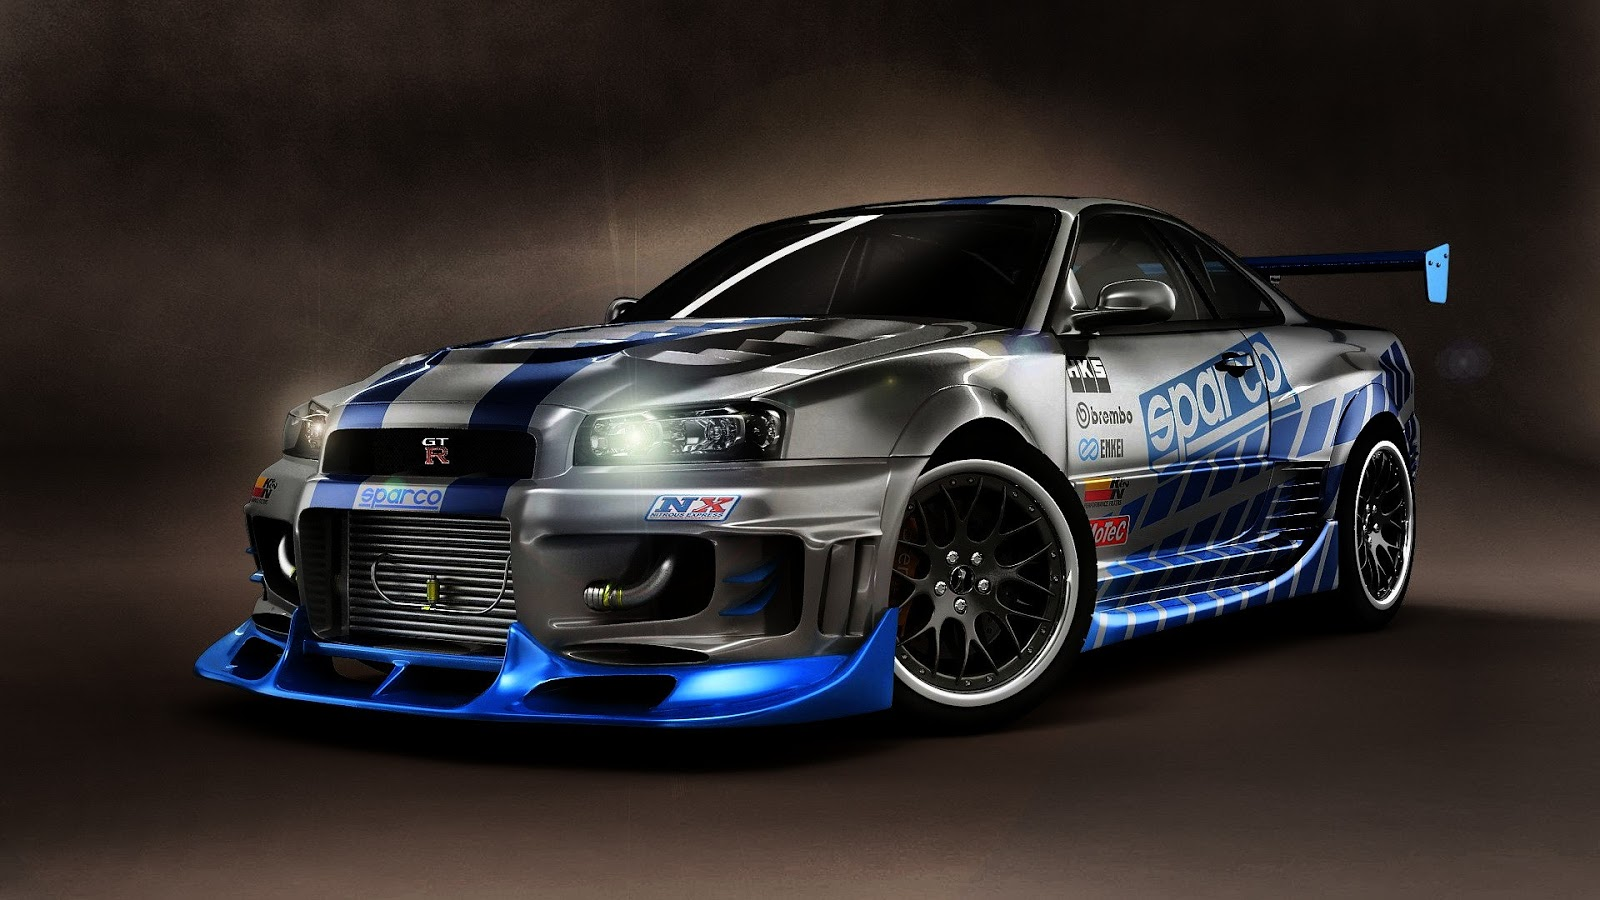 Free Download Nissan Skyline Gtr R34 Wallpaper Worldwide Photos